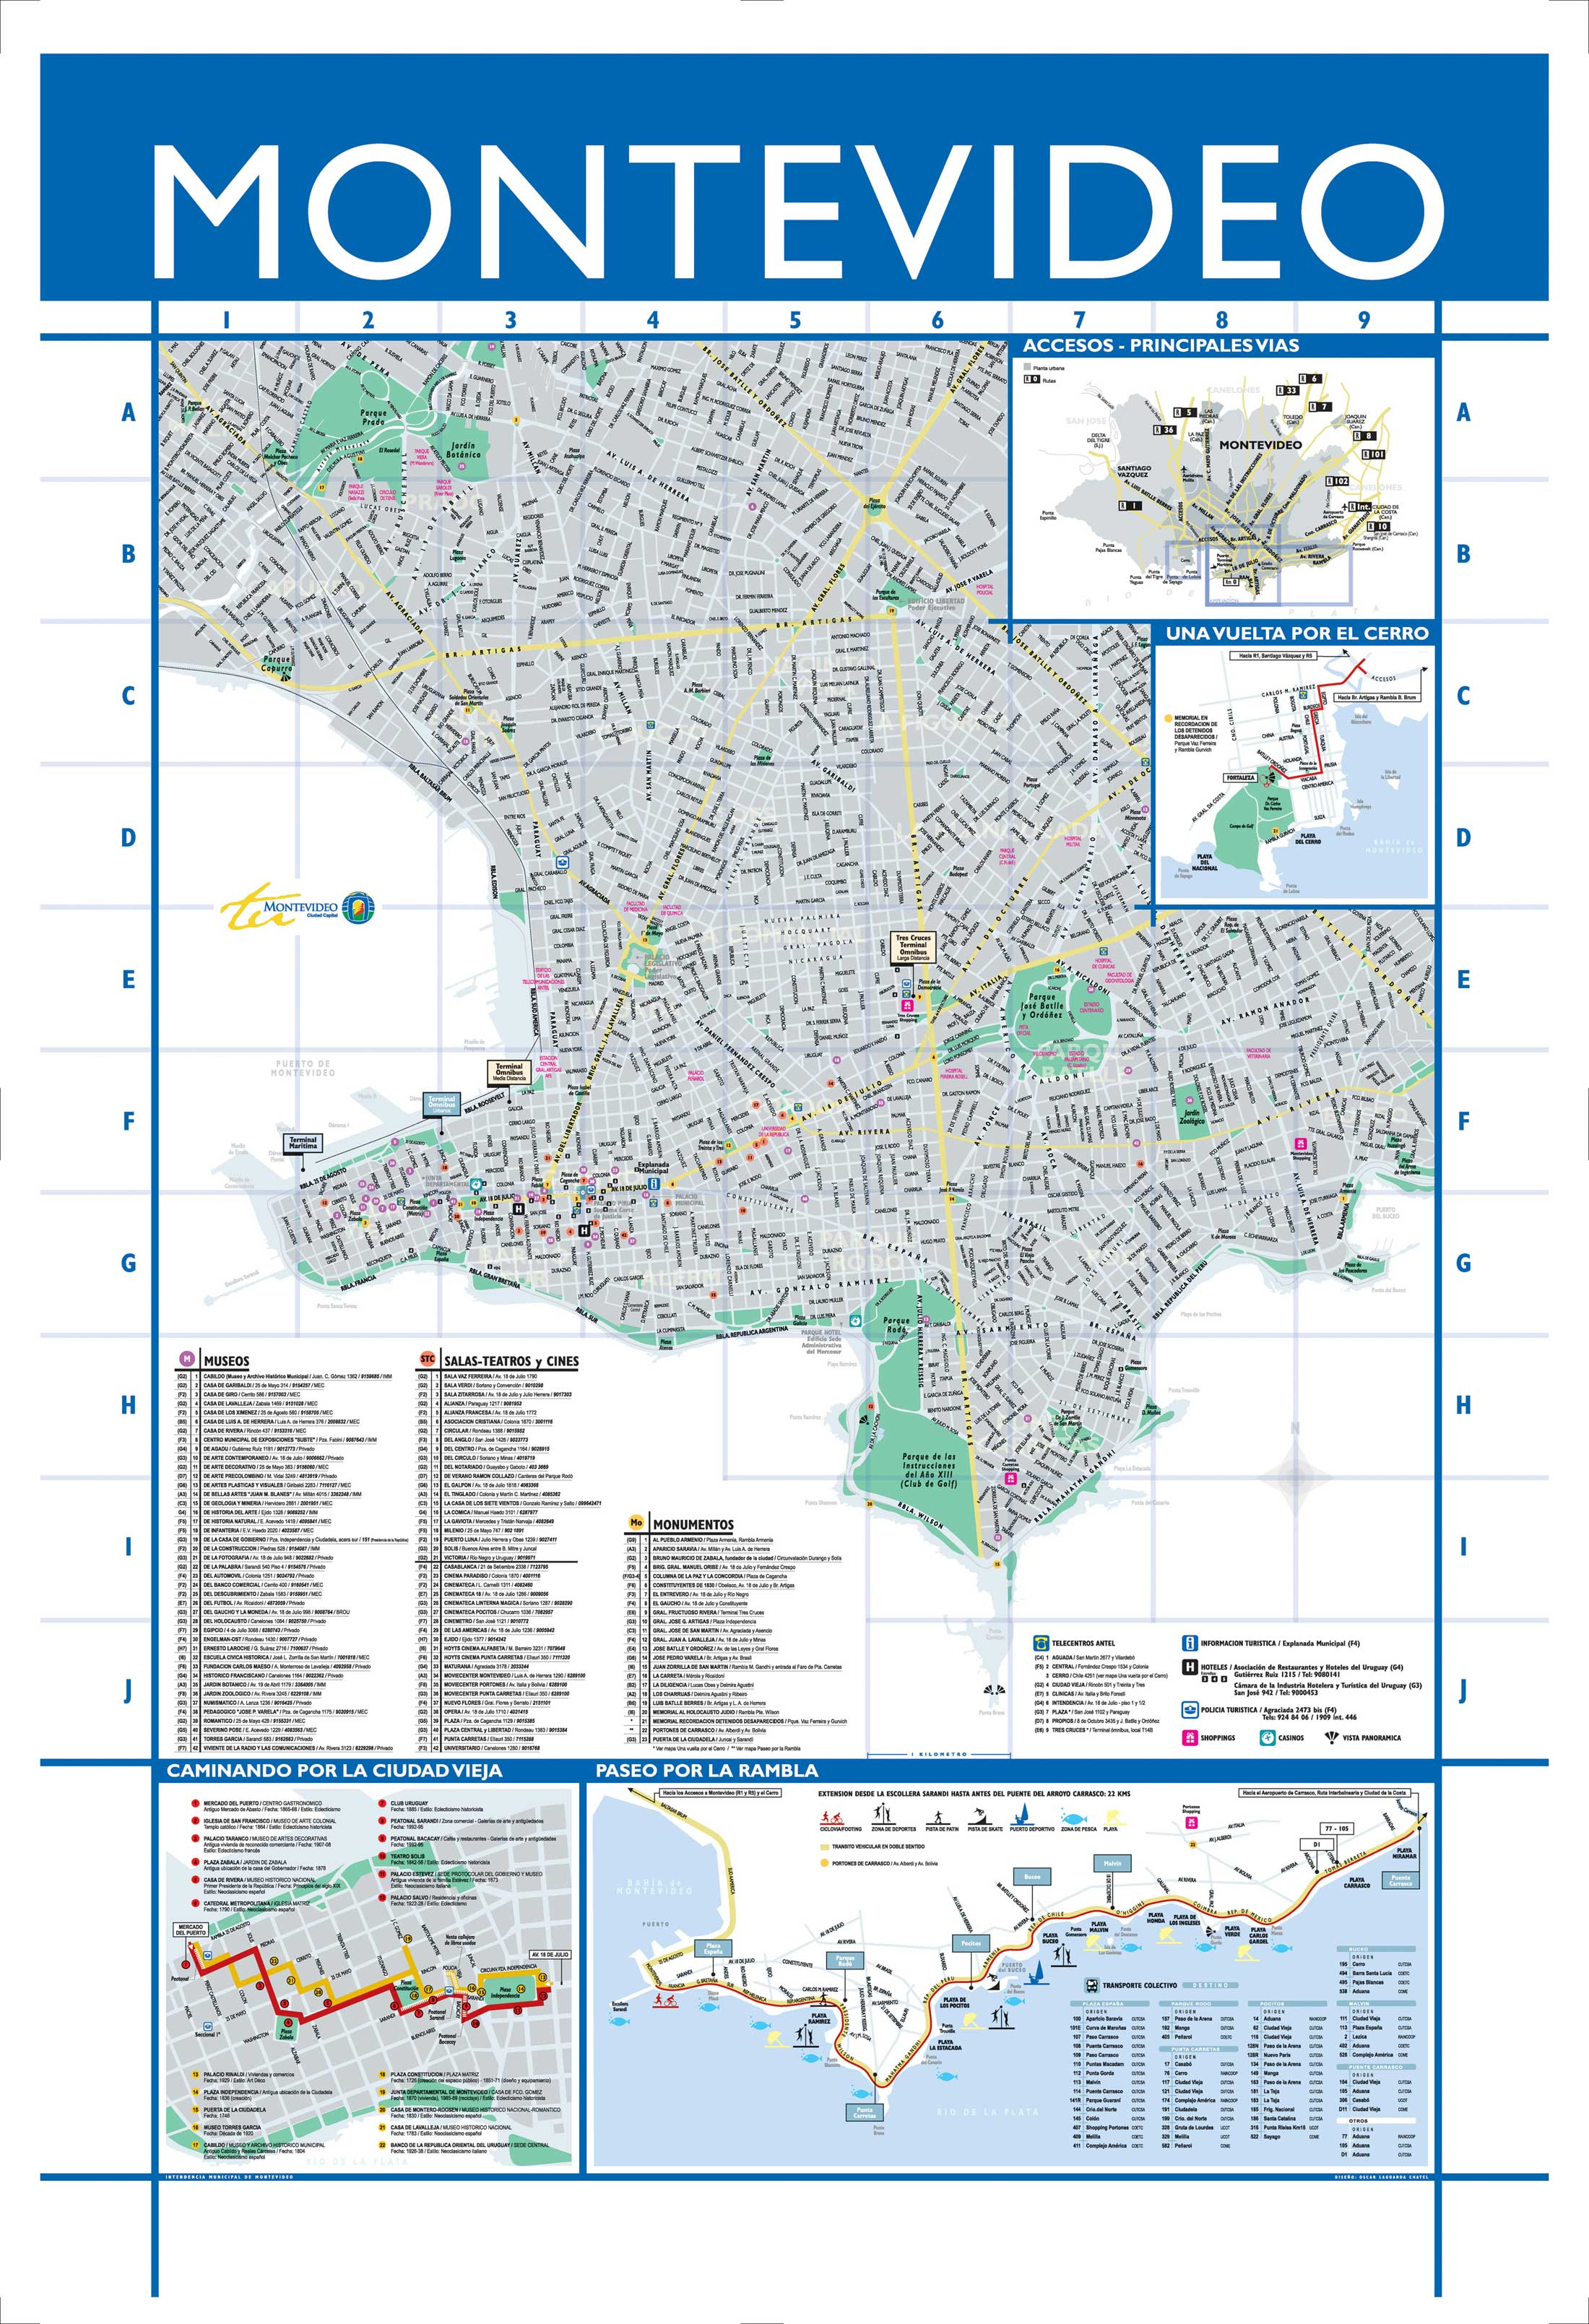 Large Montevideo Maps For Free Download And Print High - Montevideo map